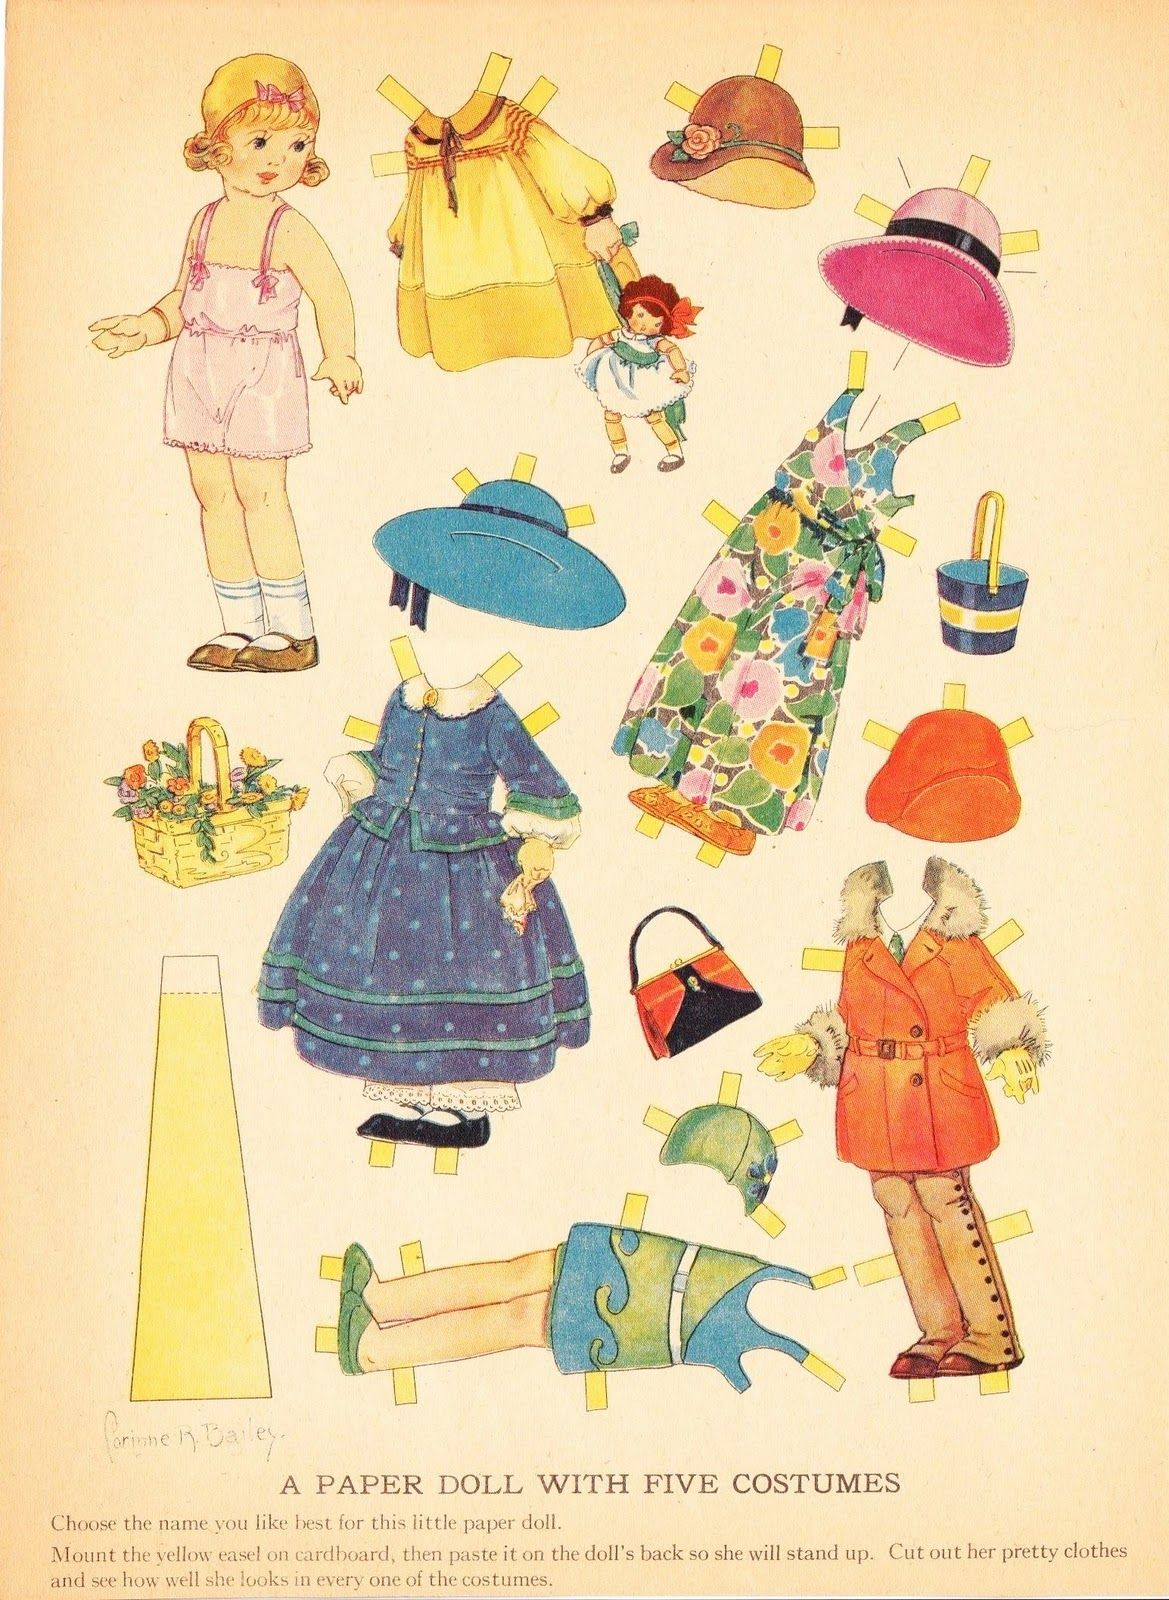 The Paper Collector: A Paper Doll with Five Costumes, c. 1932